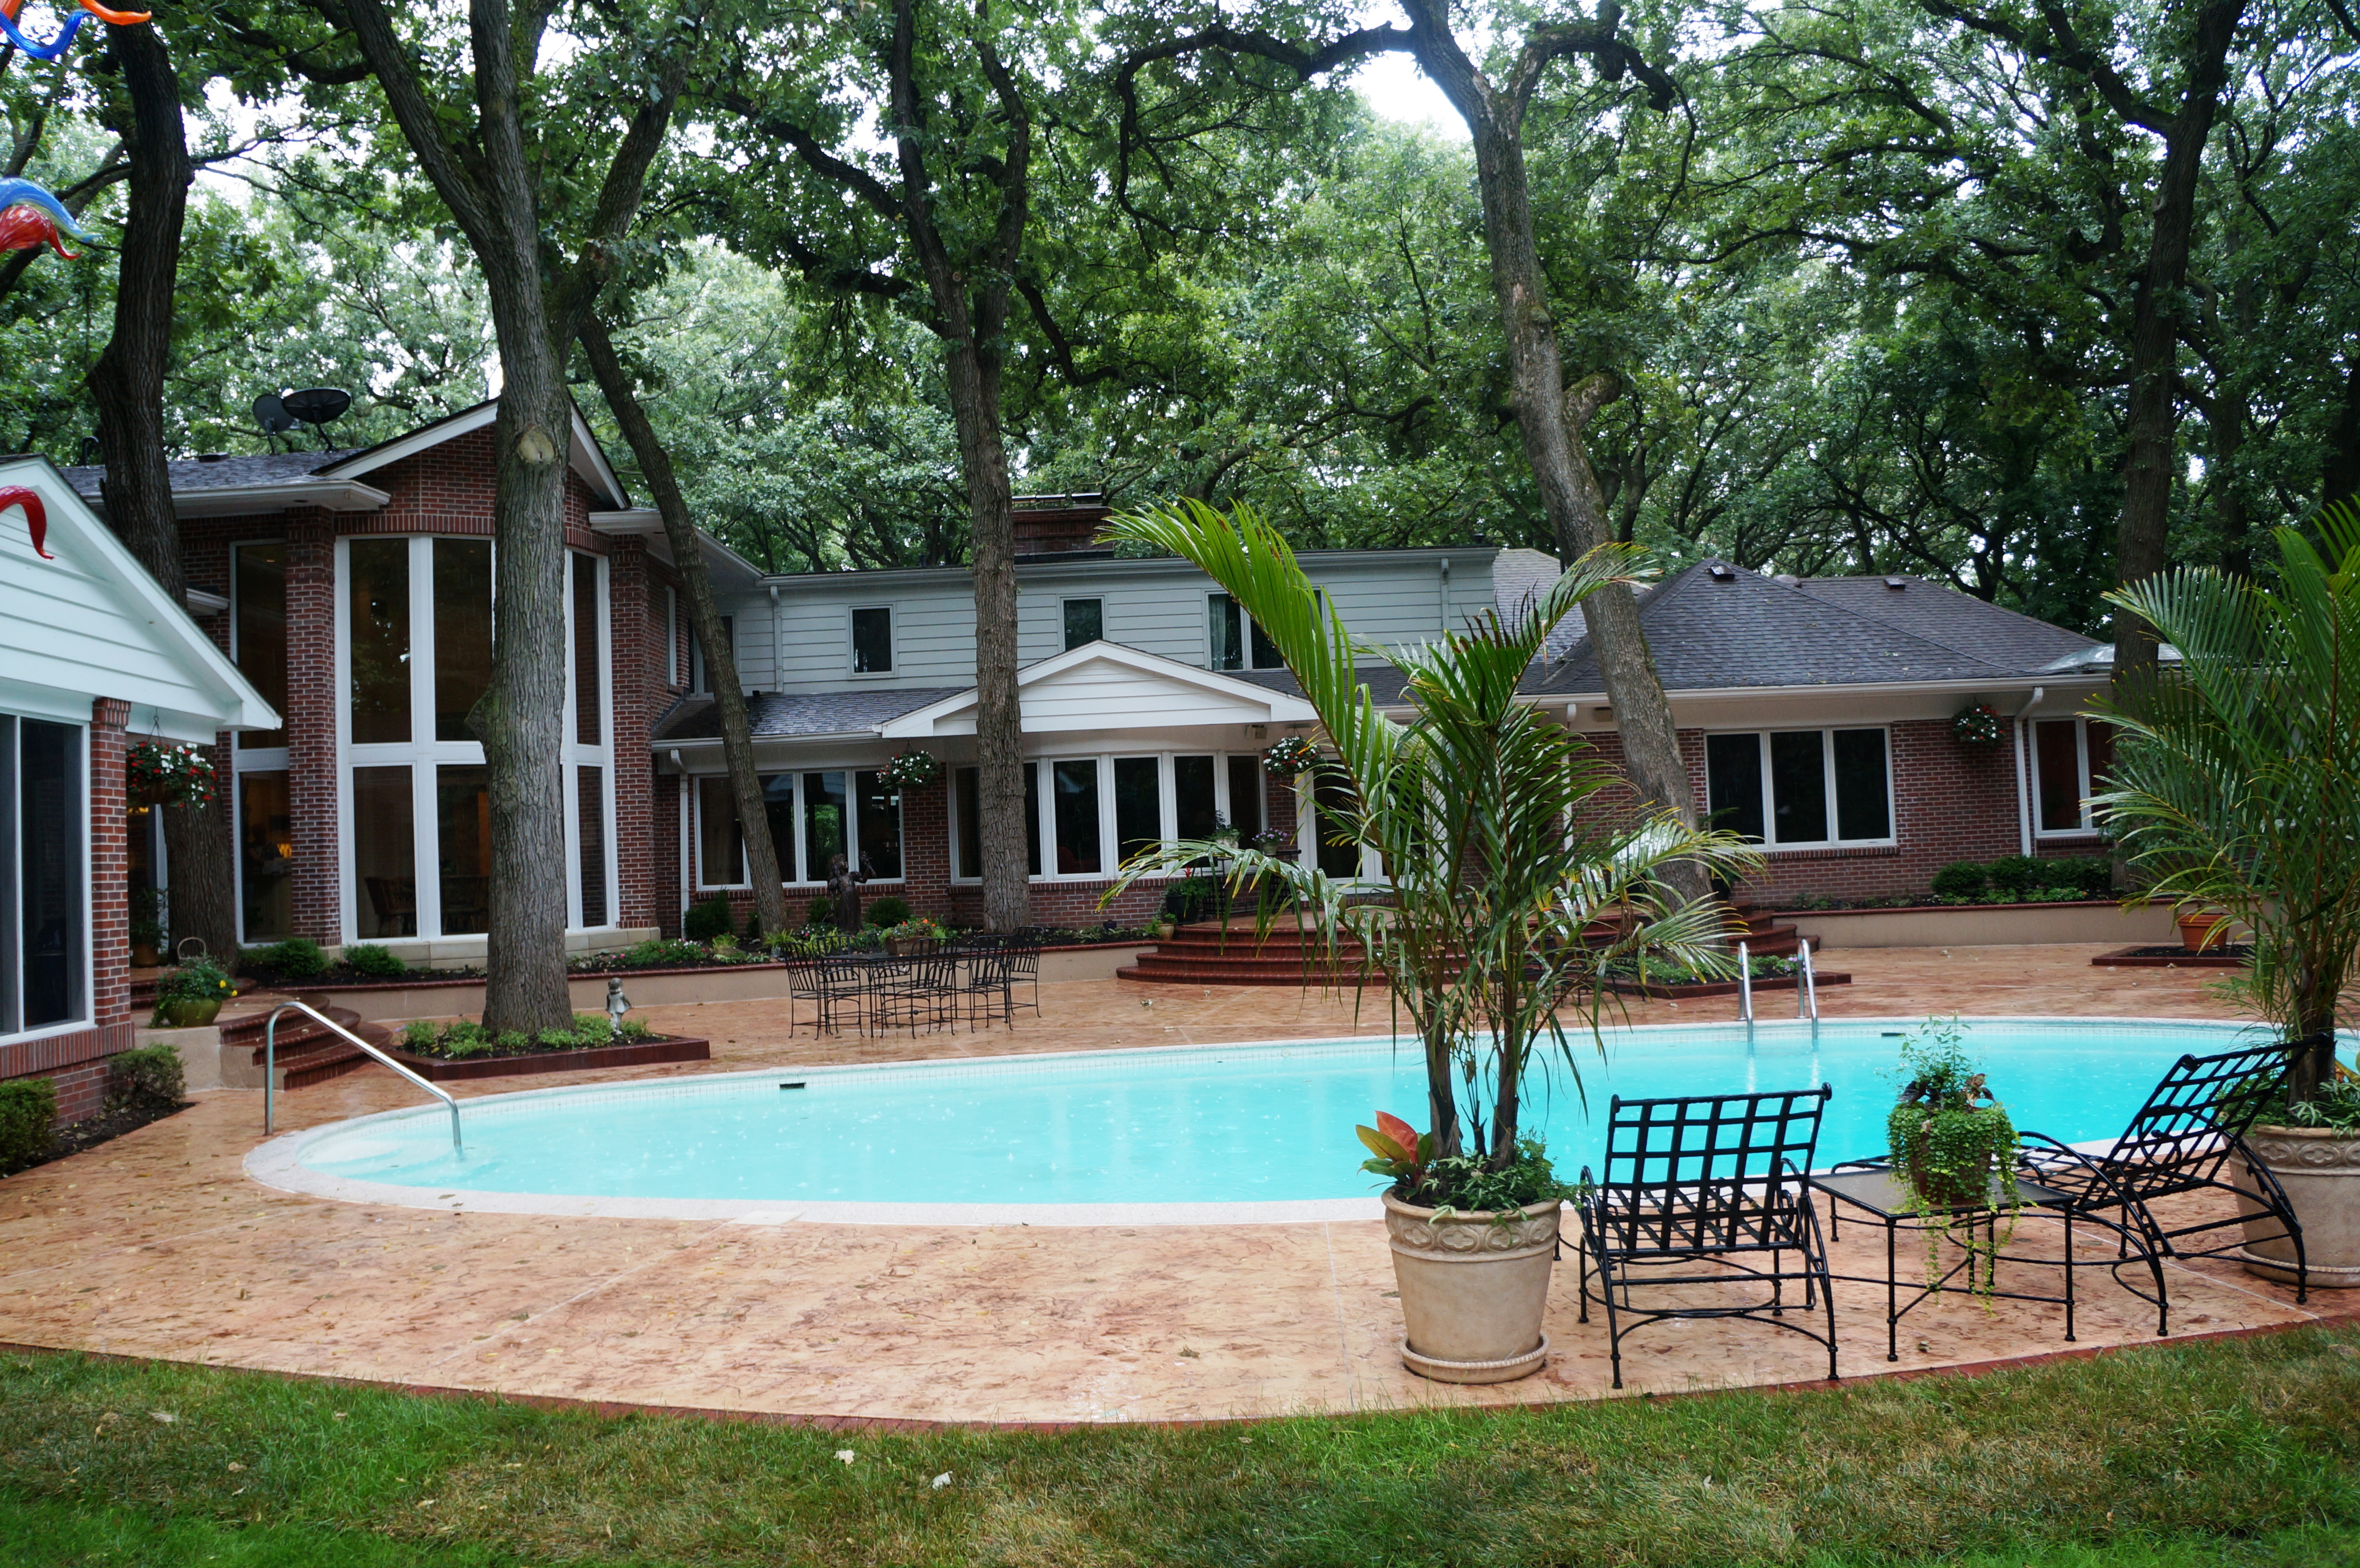 Homeowners Choose Stamped Concrete for Renovated Patio and Pool ...